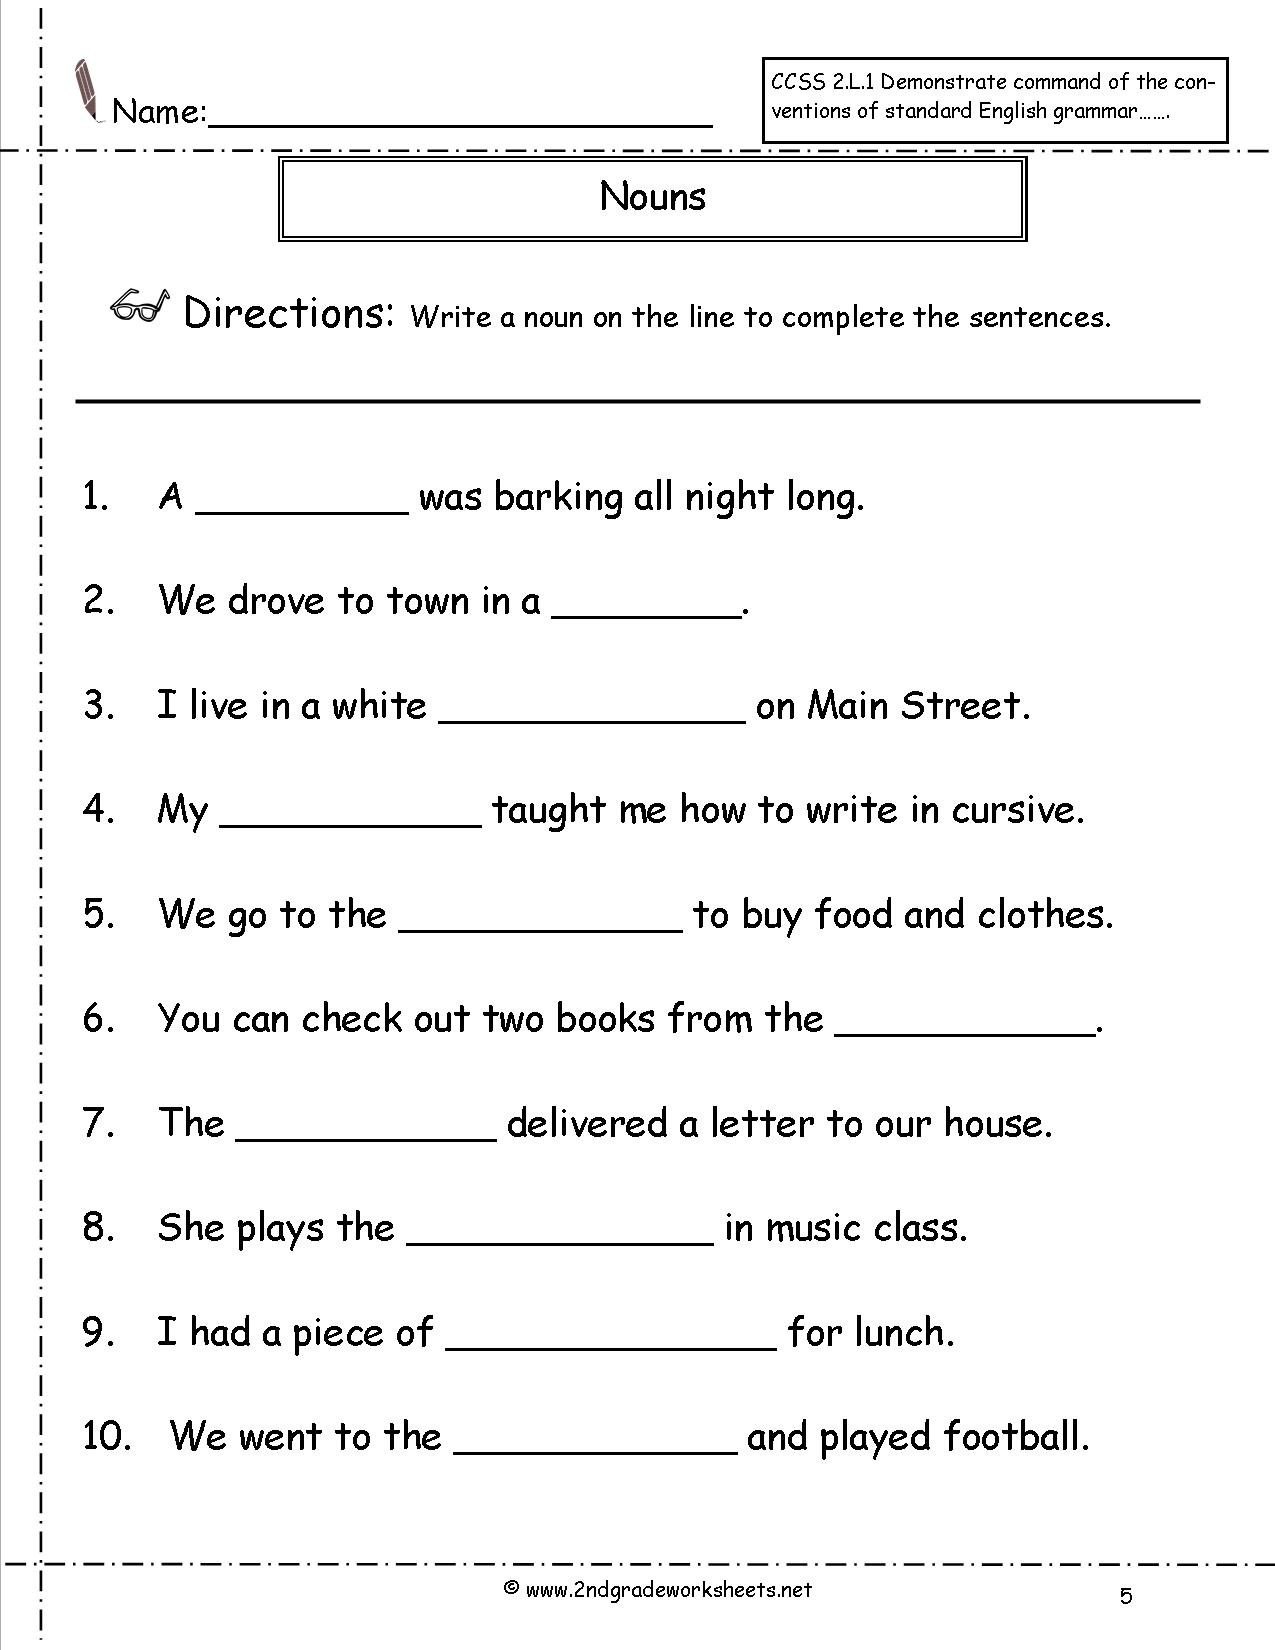 20 Best Images Of Abbreviations Worksheets 7th Grade